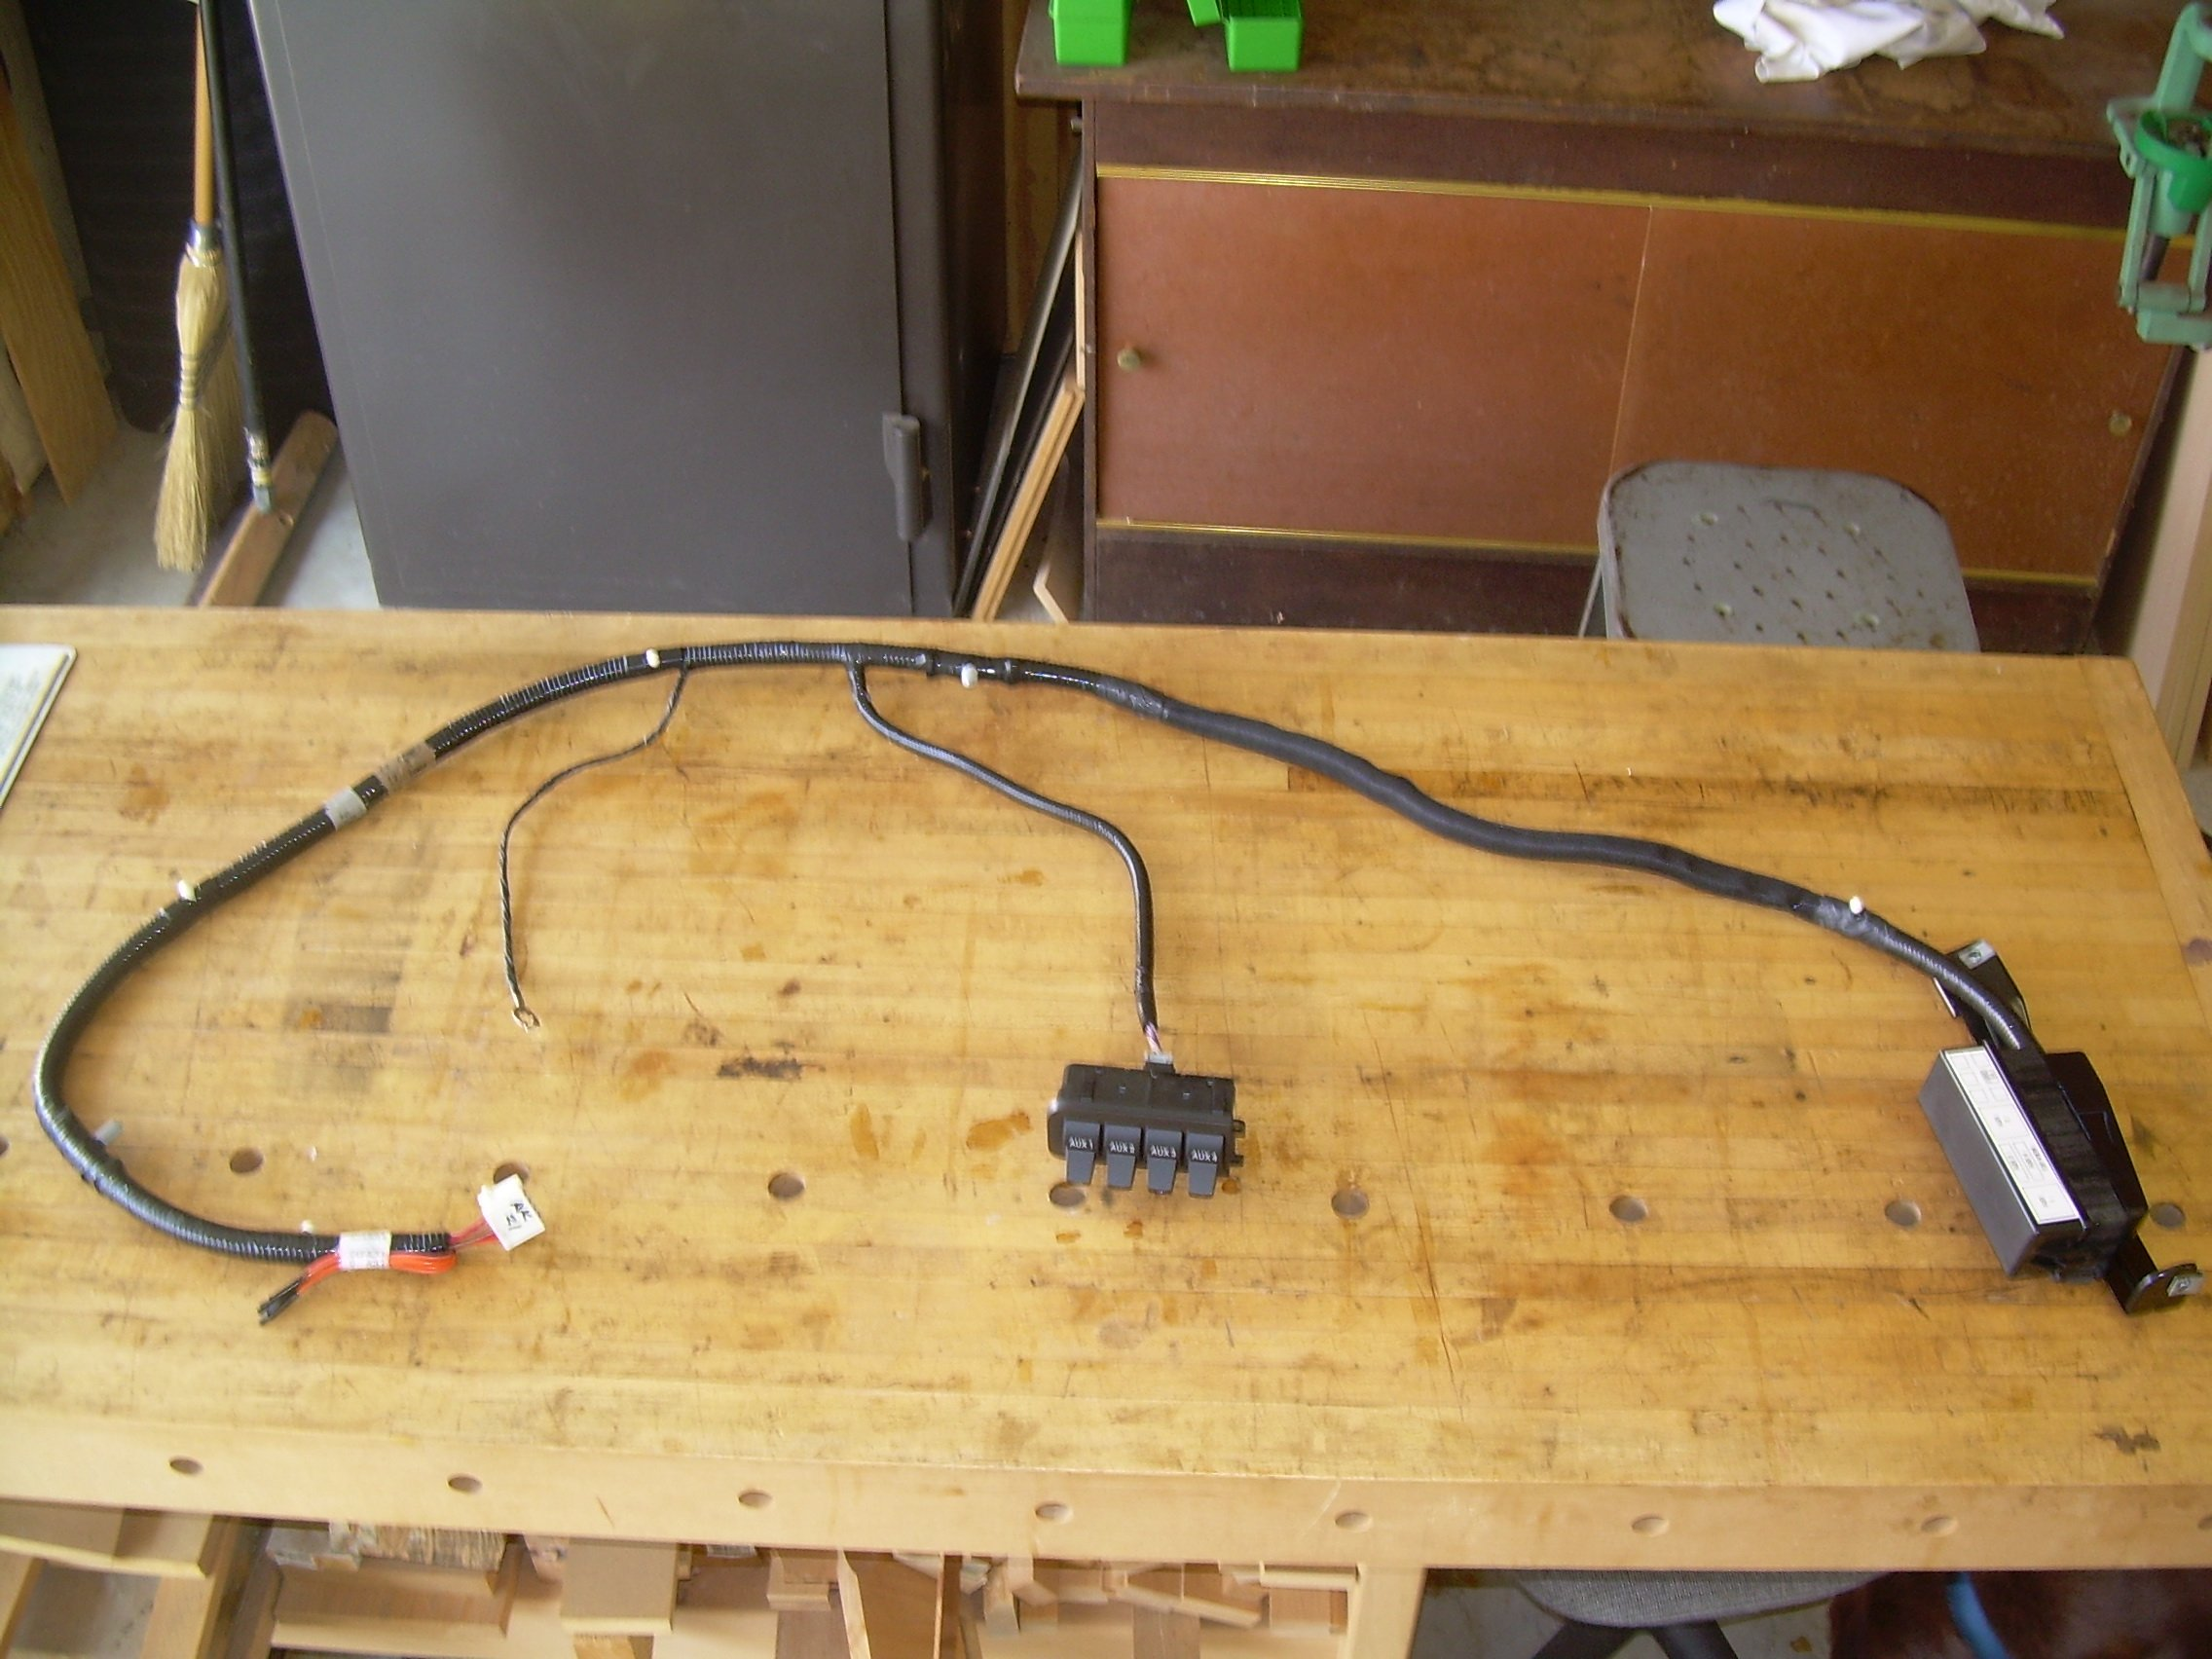 ford trailer wiring harness diagram for a light switch and outlet electrical diagrams installing upfitter switches - 2005-2007 superduty